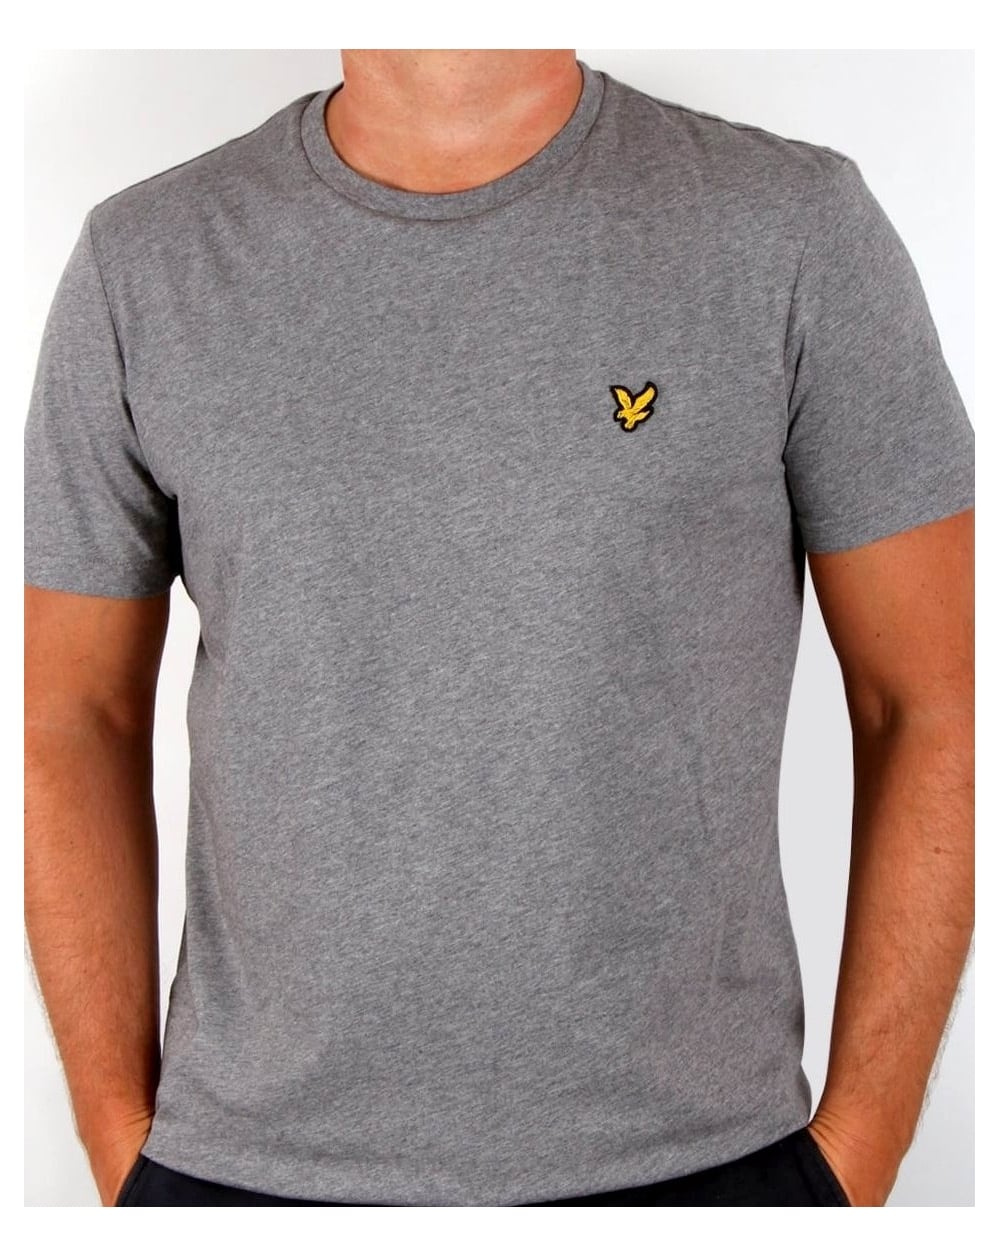 lyle and scott t shirt mid grey marl tee crew neck men 39 s. Black Bedroom Furniture Sets. Home Design Ideas